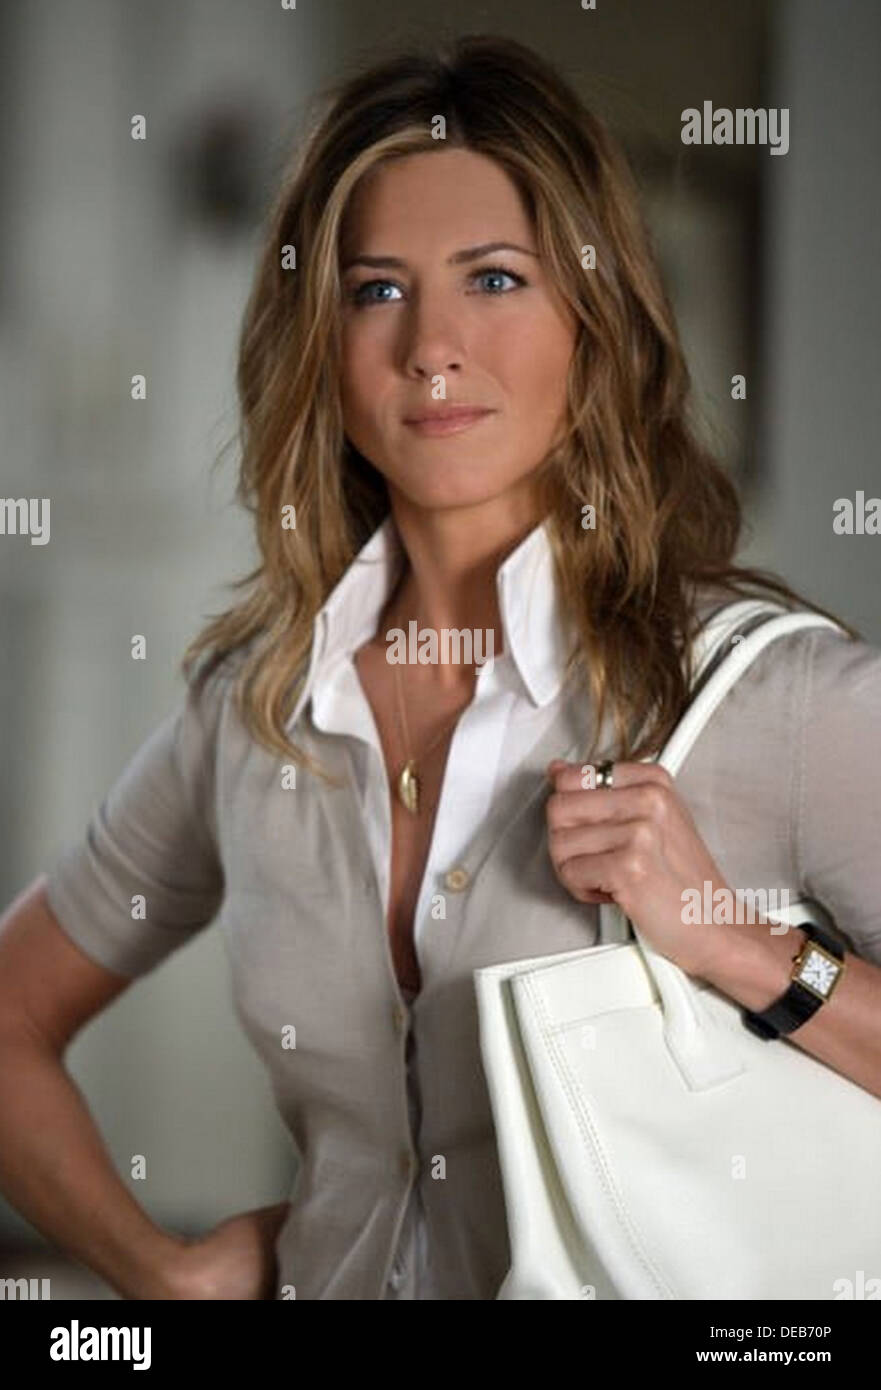 The Break Up 2006 Universal Pictures Film With Jennifer Aniston Stock Photo Alamy